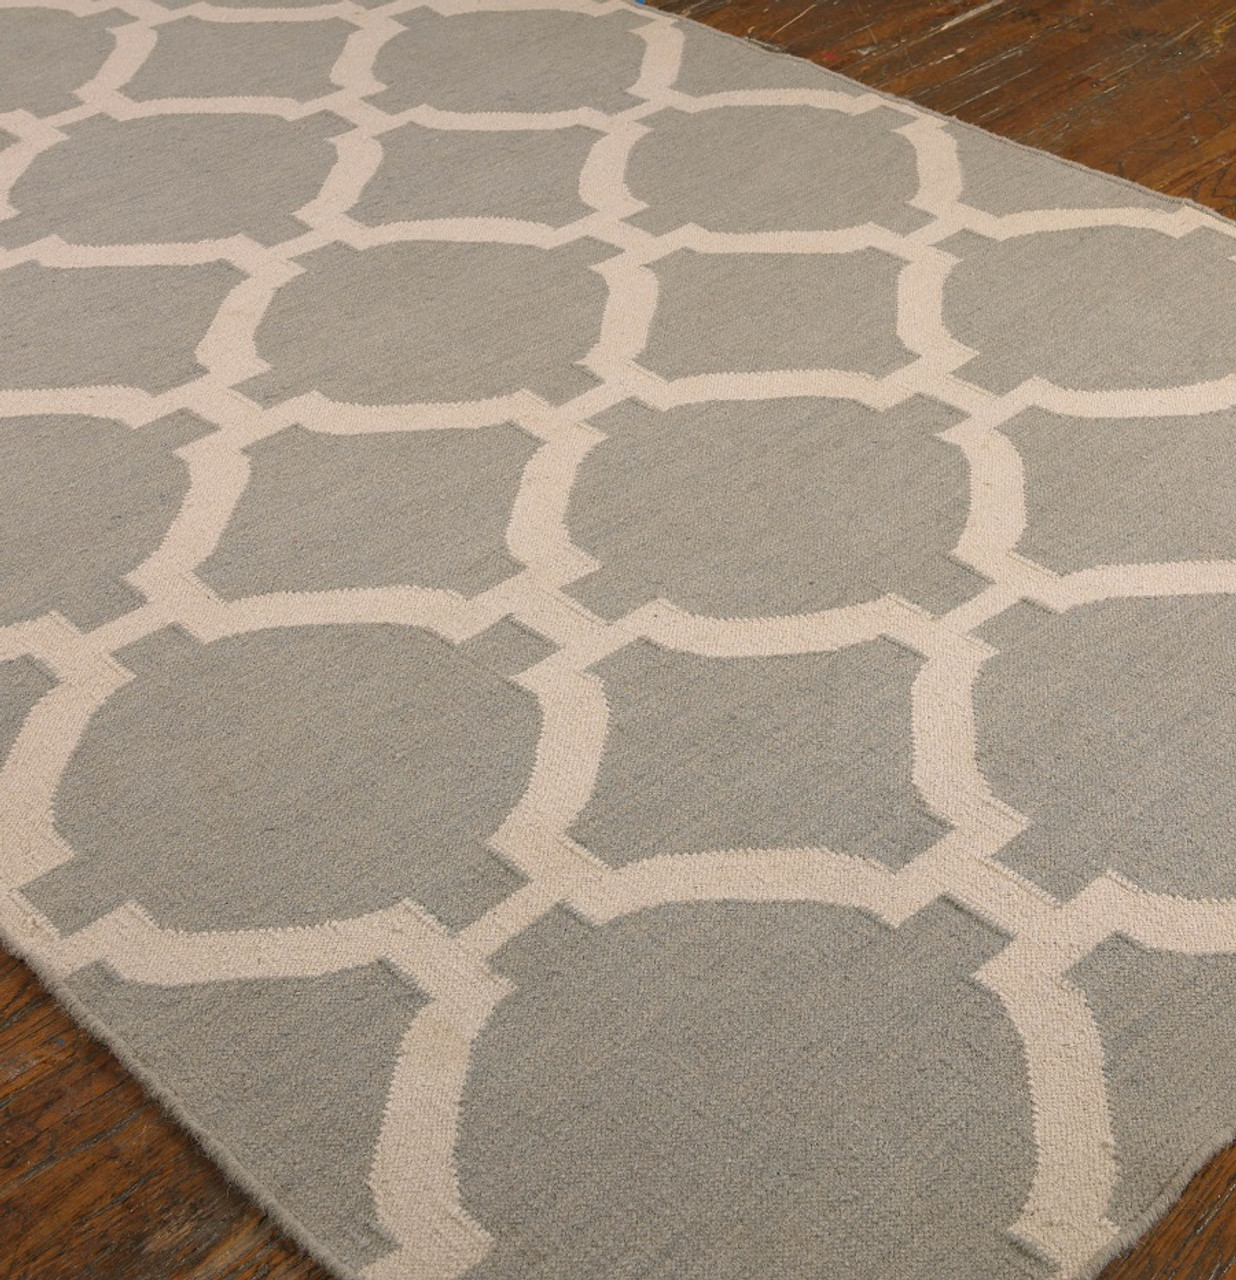 rug gray mcgee lexington products co outdoor indoor